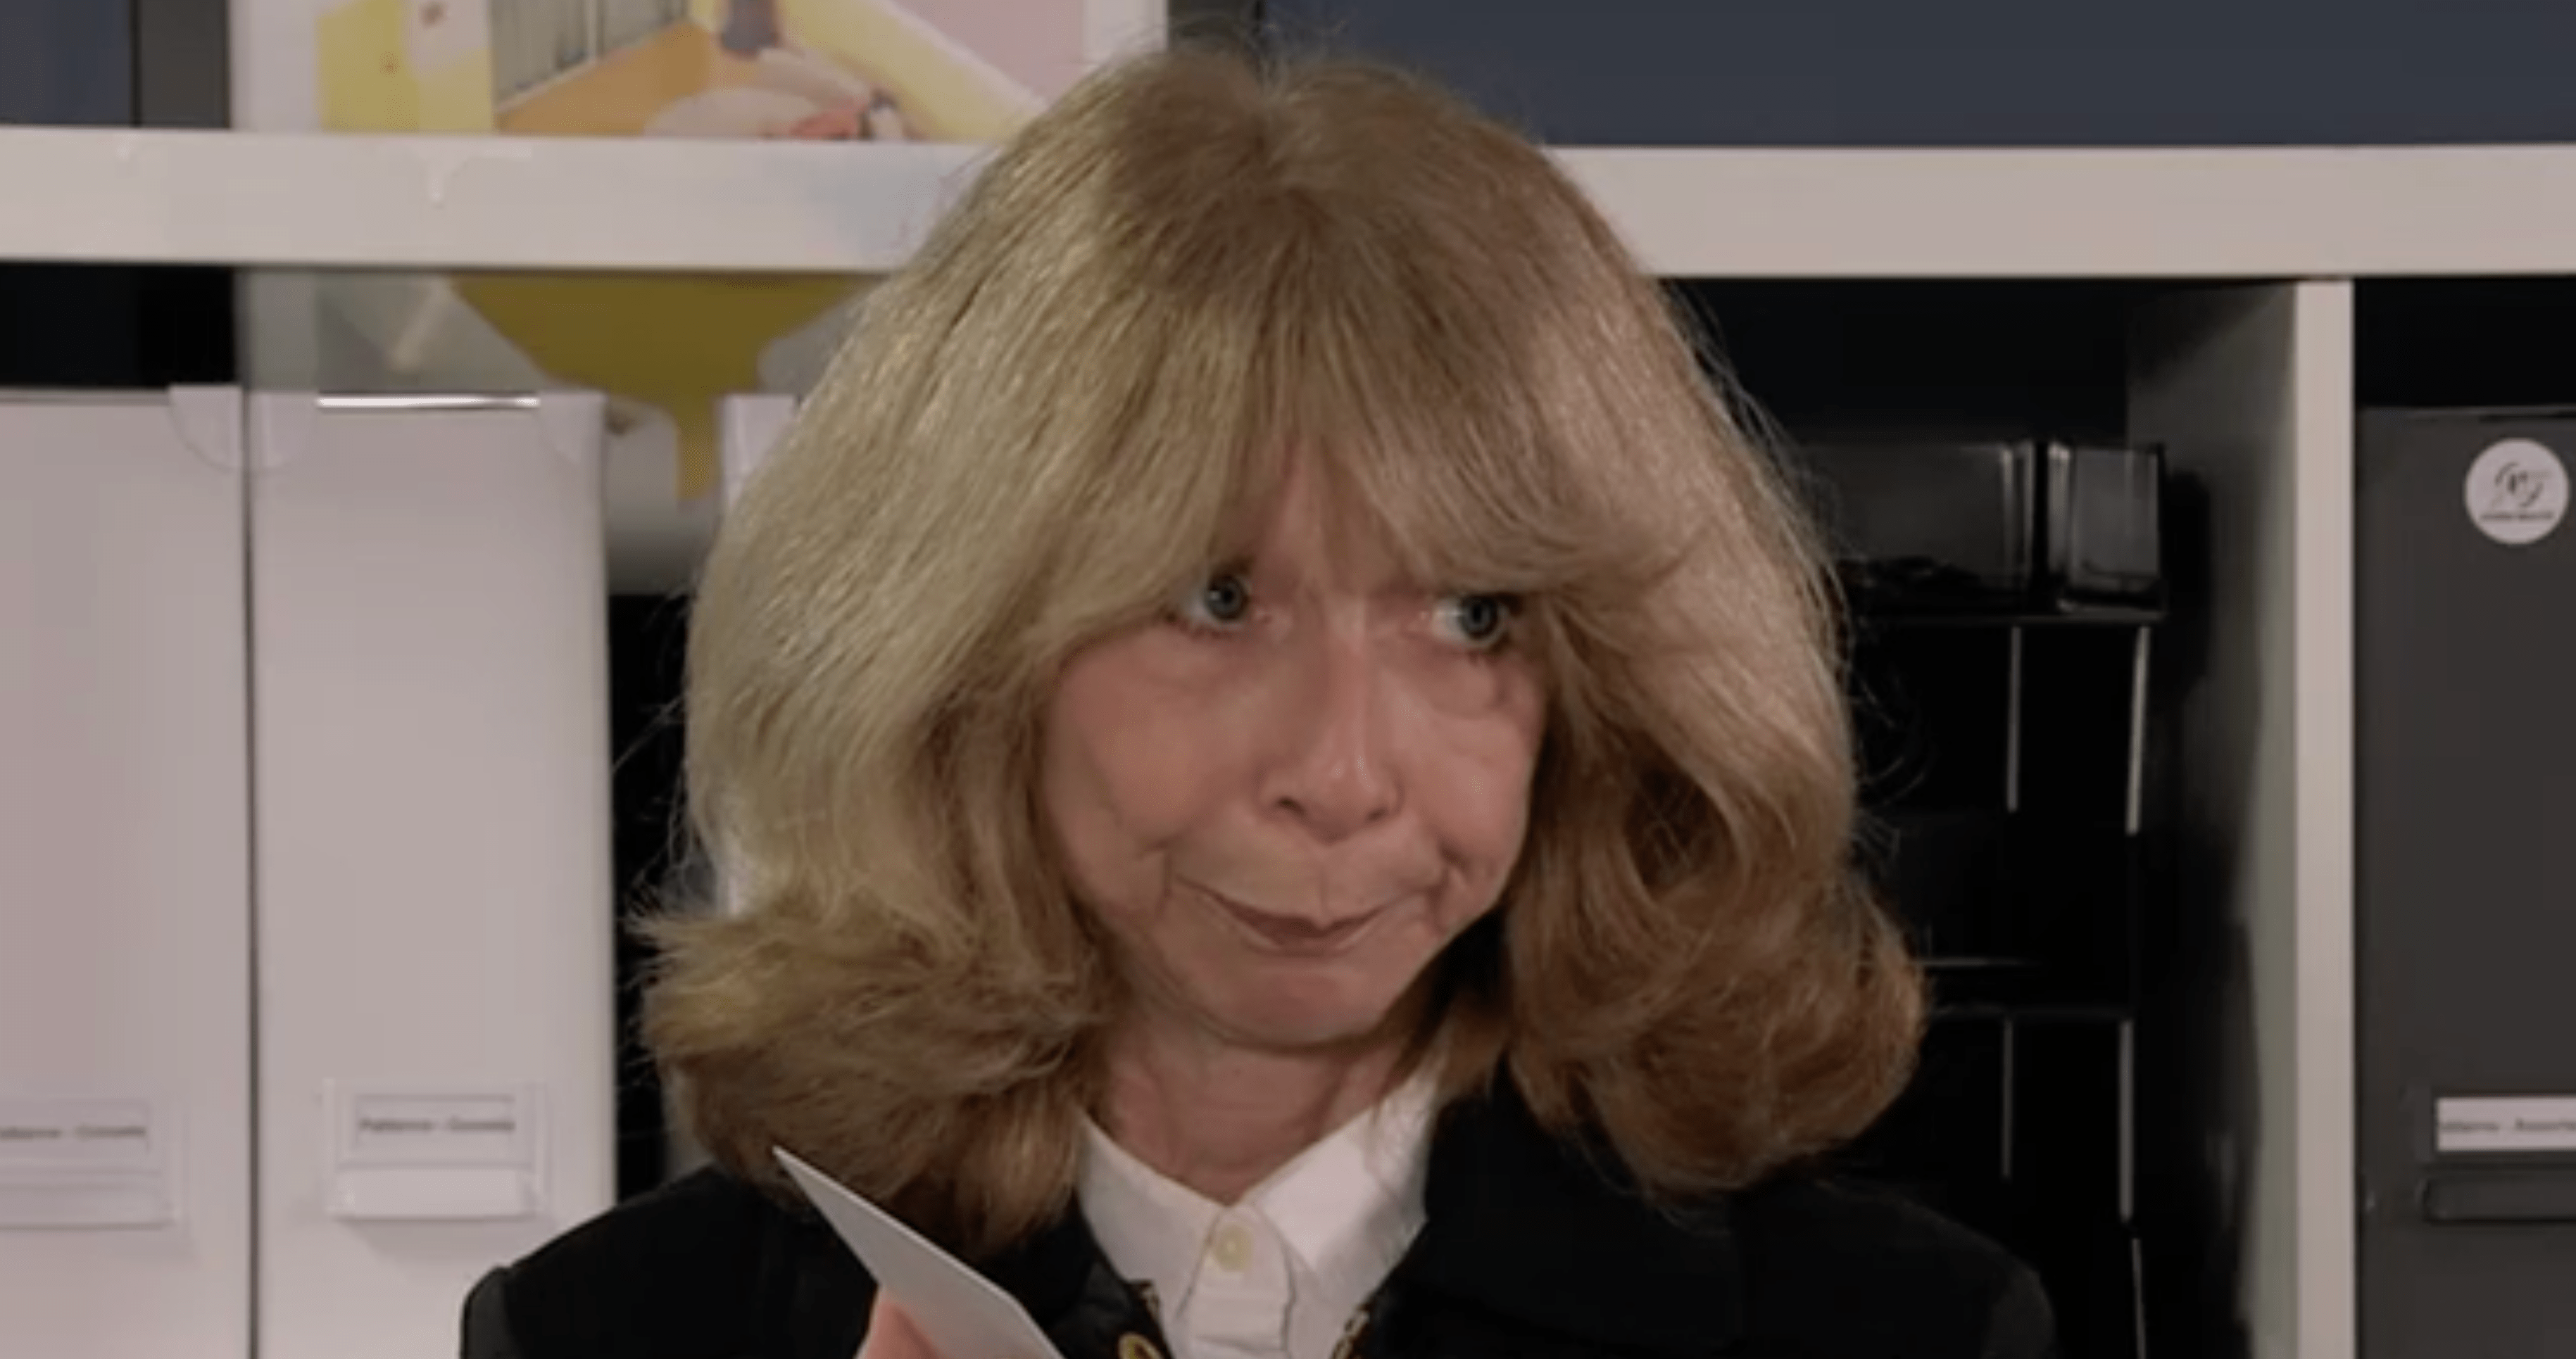 Coronation Street spoilers: Gail Rodwell discovers evidence of missing Fanny